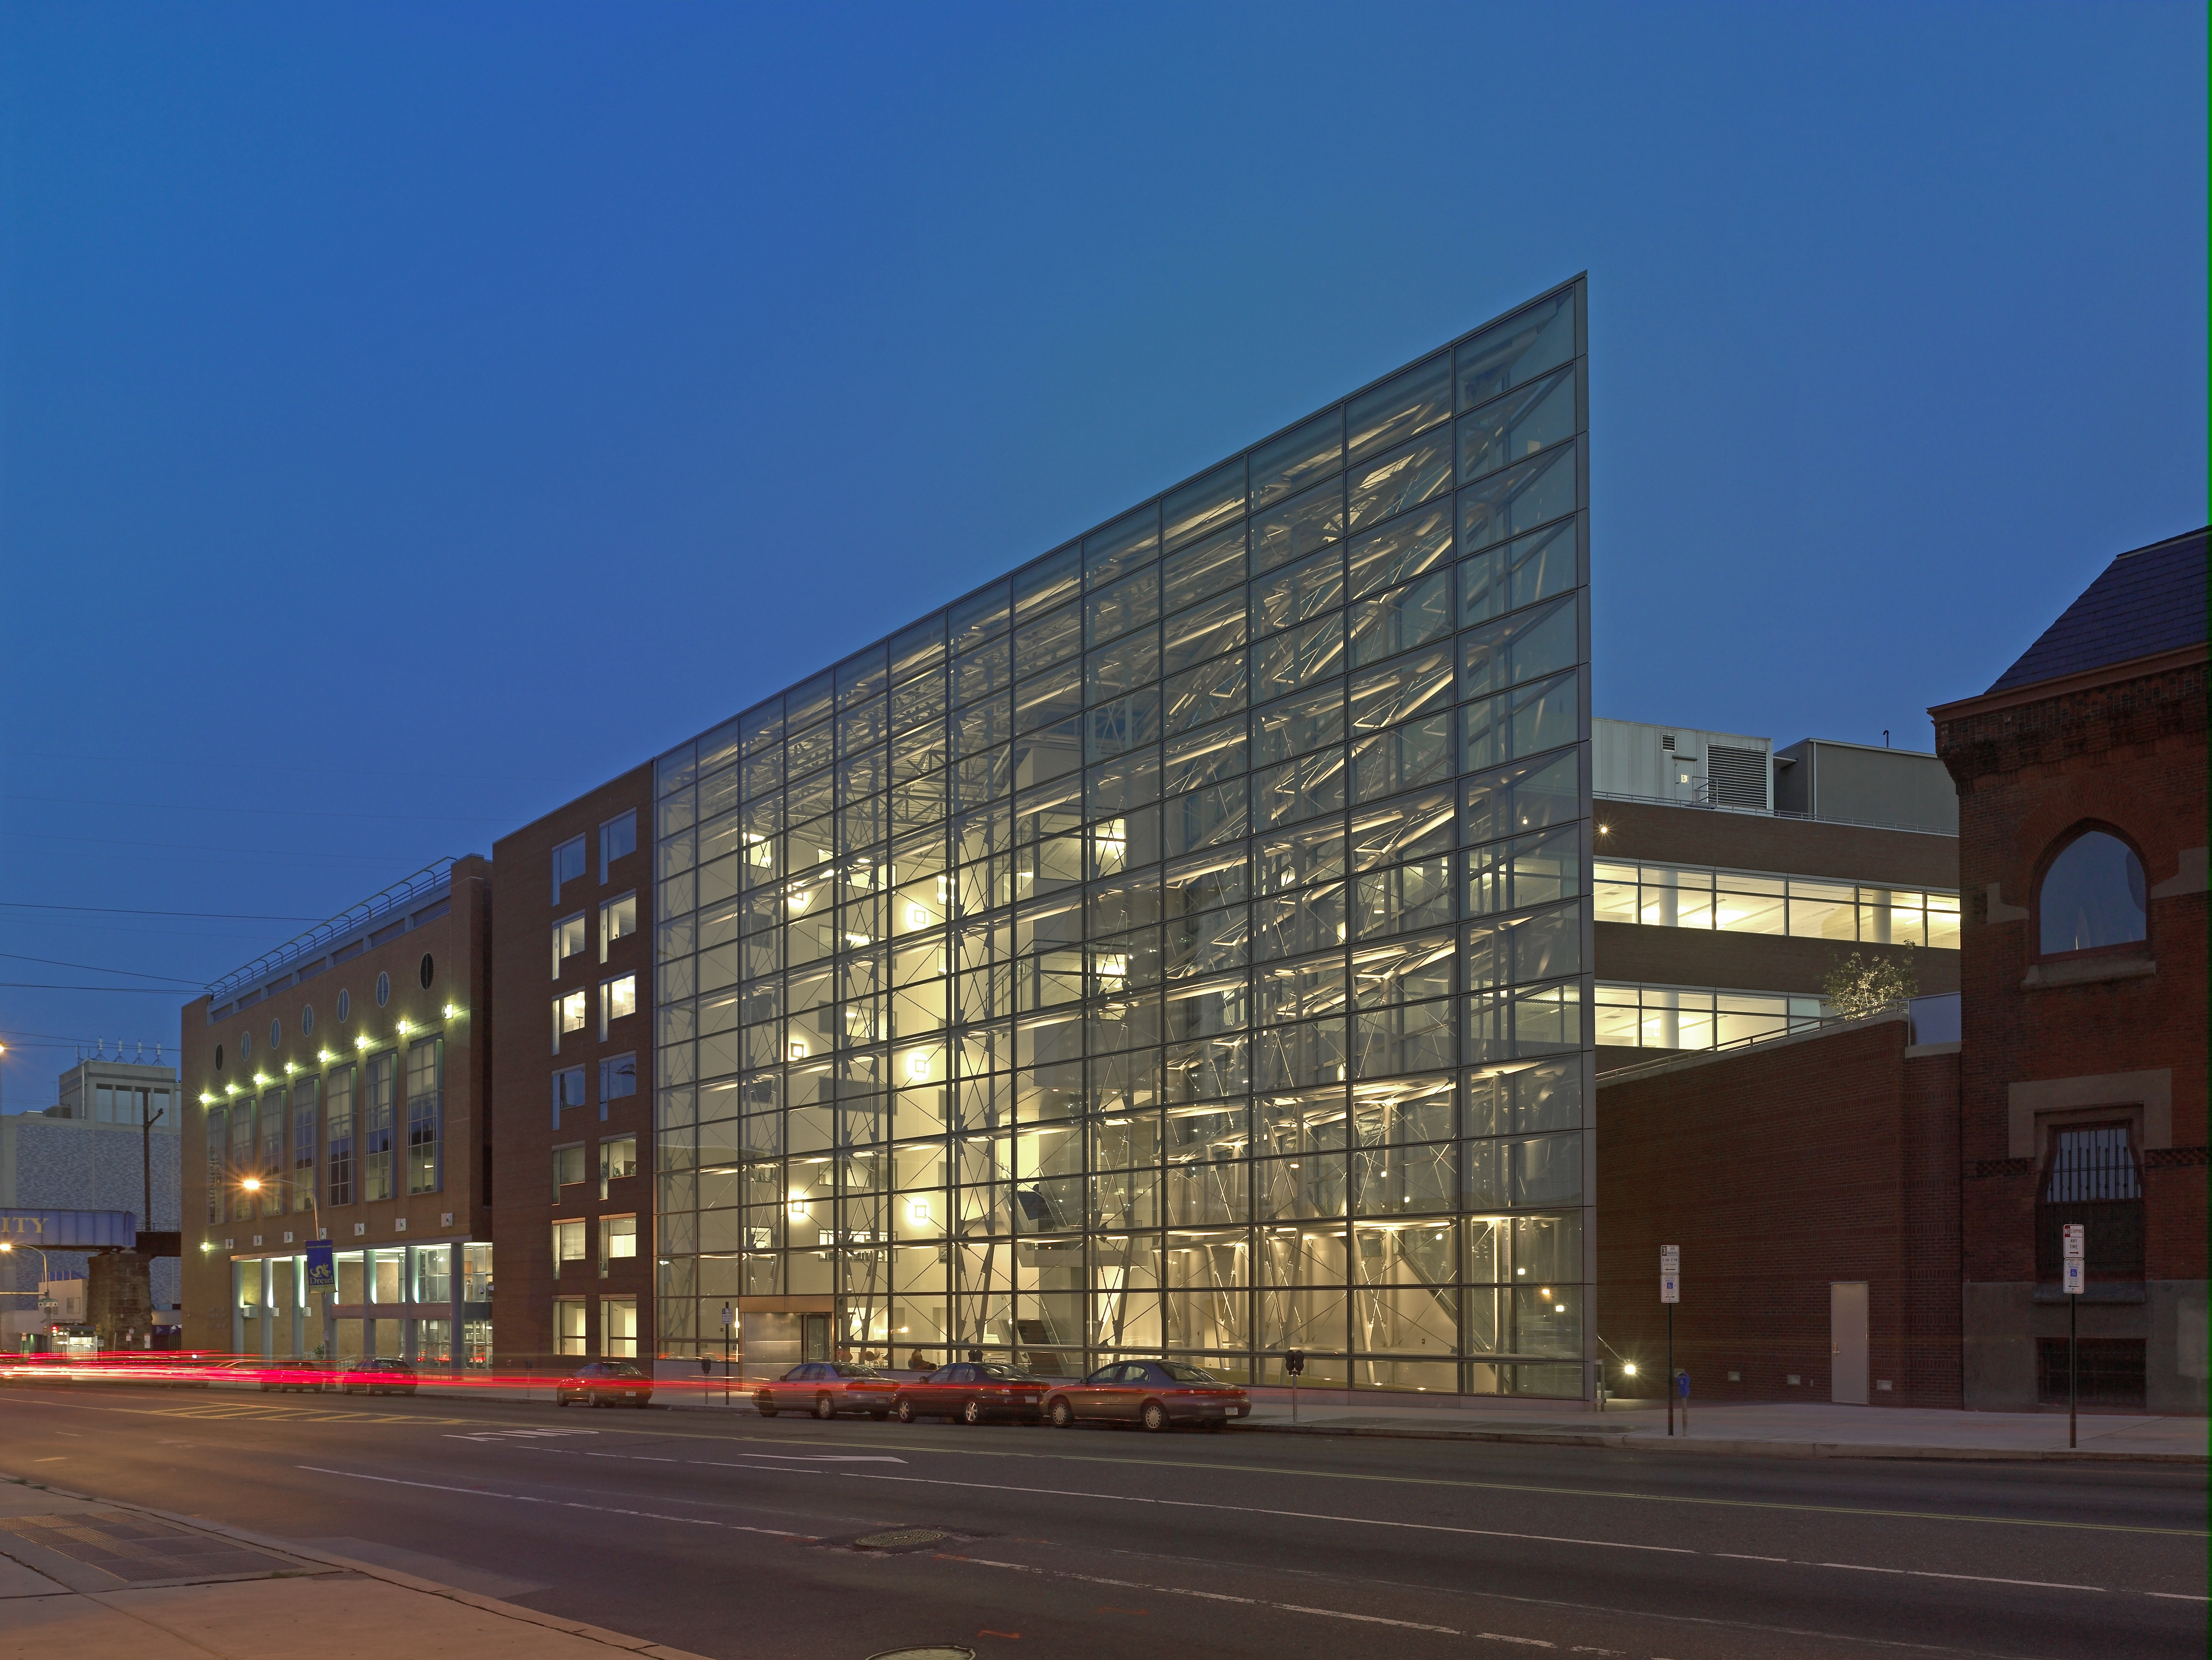 Drexel University Edmund Bossone Research Building